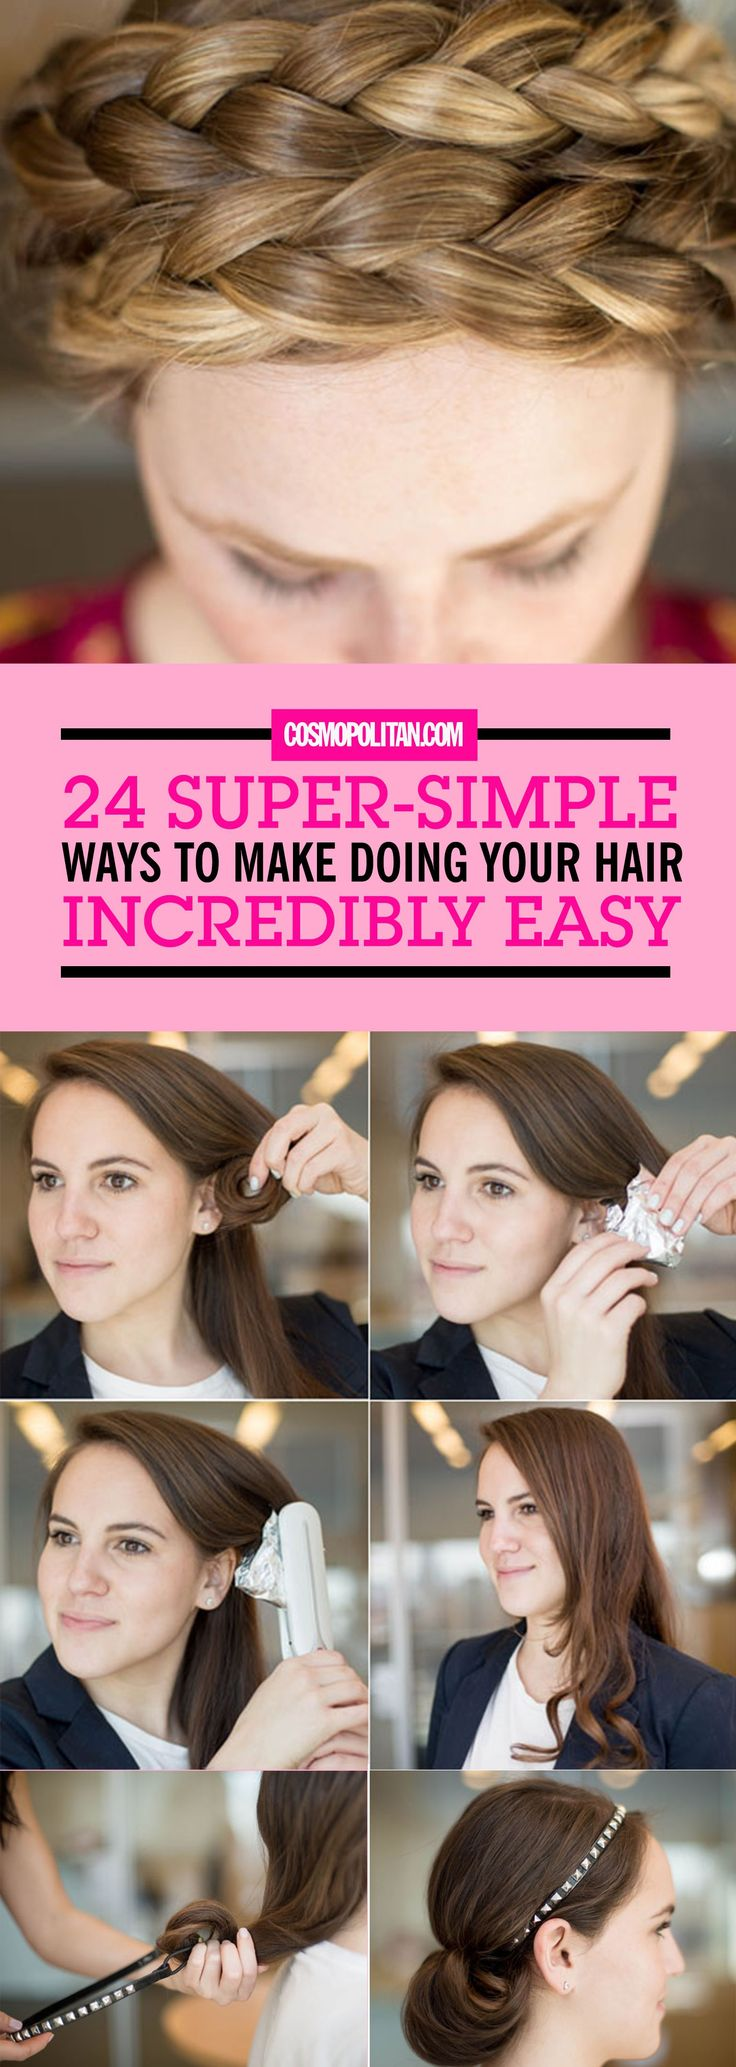 15 SuperSimple Ways to Make Doing Your Hair Incredibly